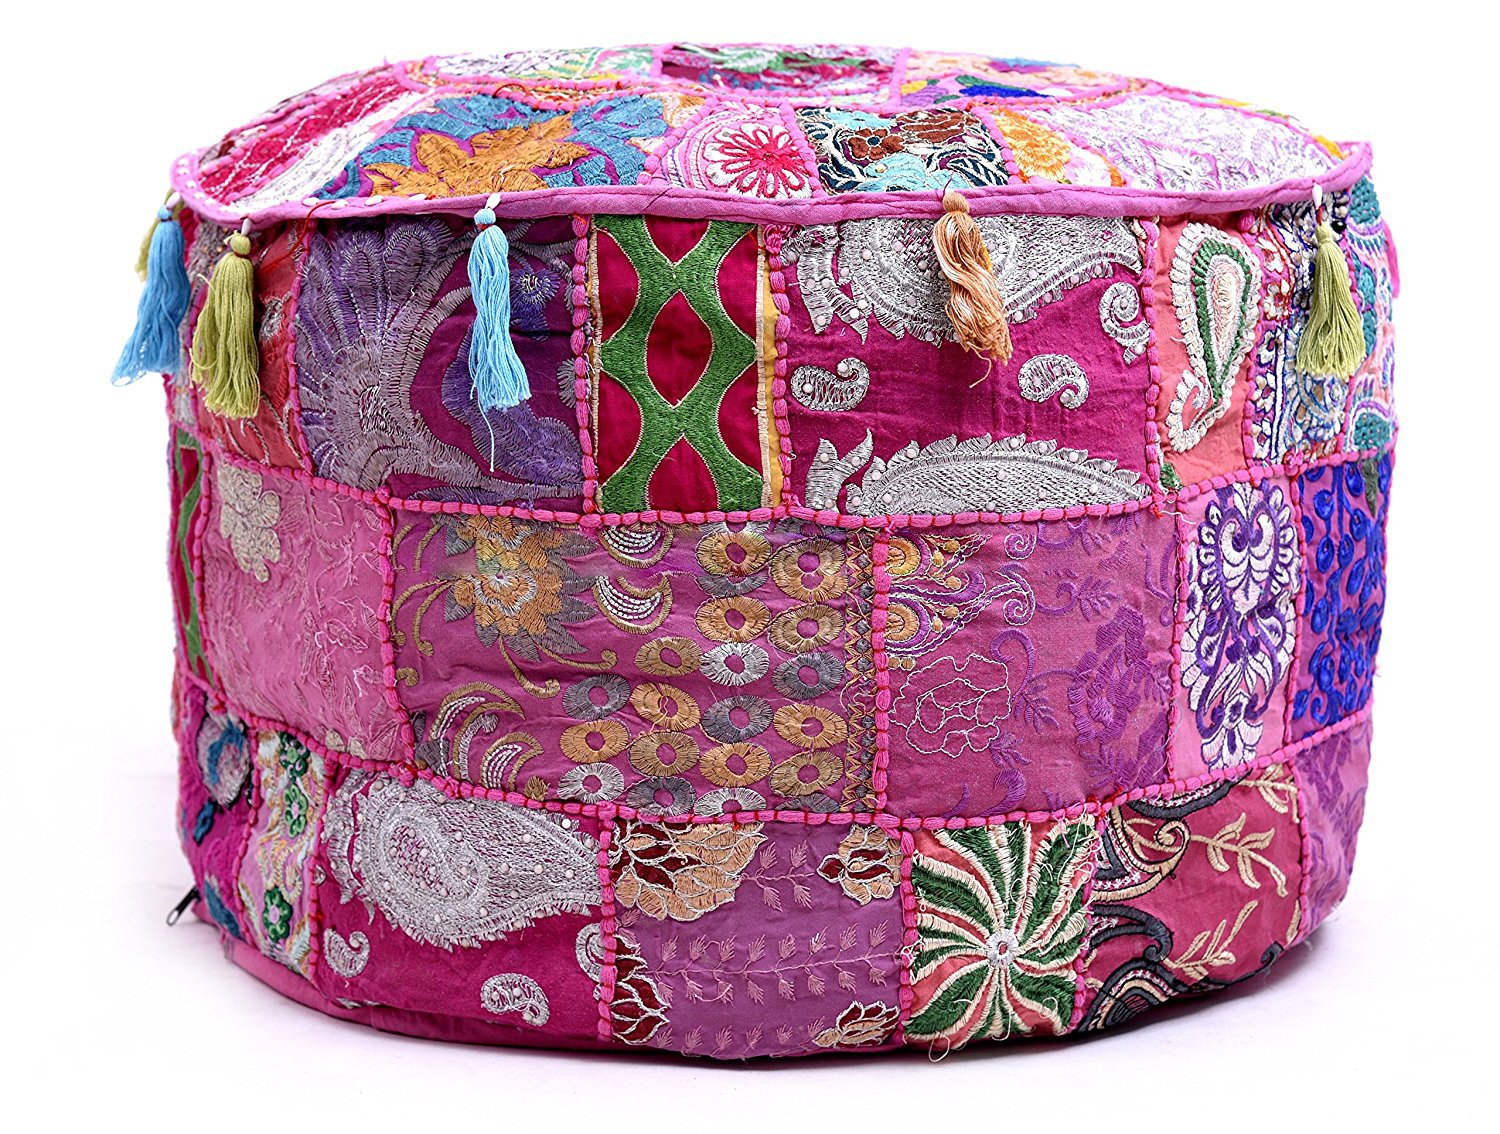 Aakriti Gallery Indian Pouf Footstool Ethnic Embroidered Pouf Cover, Indian Cotton Round Pouffe Ottoman Pouf Cover Pillow Ethnic Decor Art - Cover Only (18x13inch) (Pink)